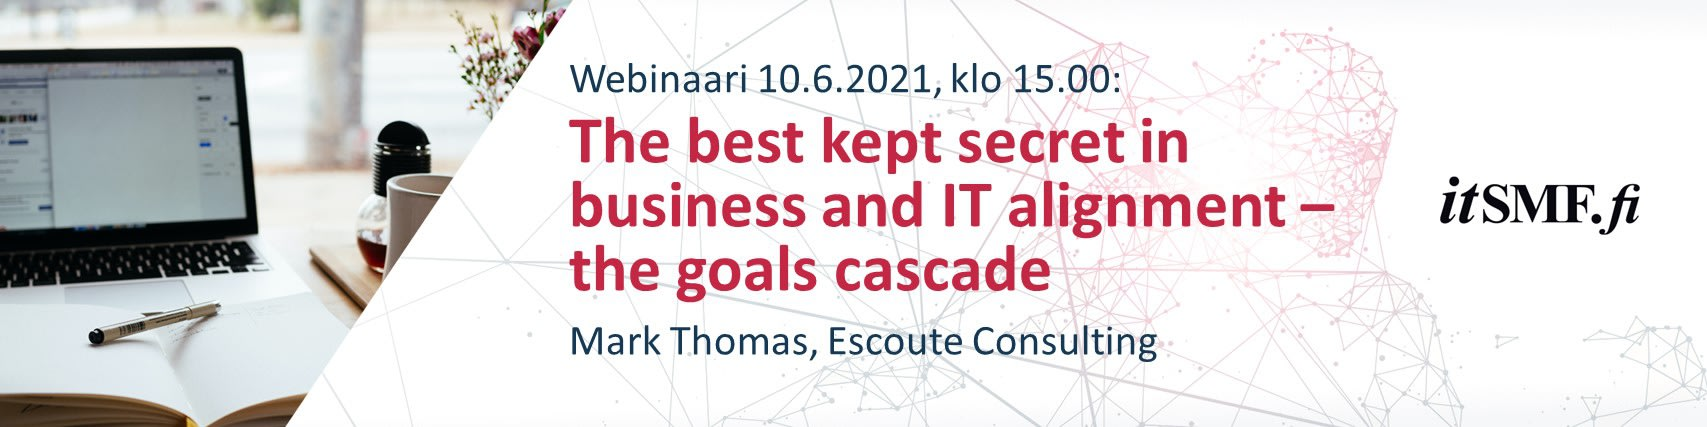 The best kept secret in business and IT alignment – the goals cascade